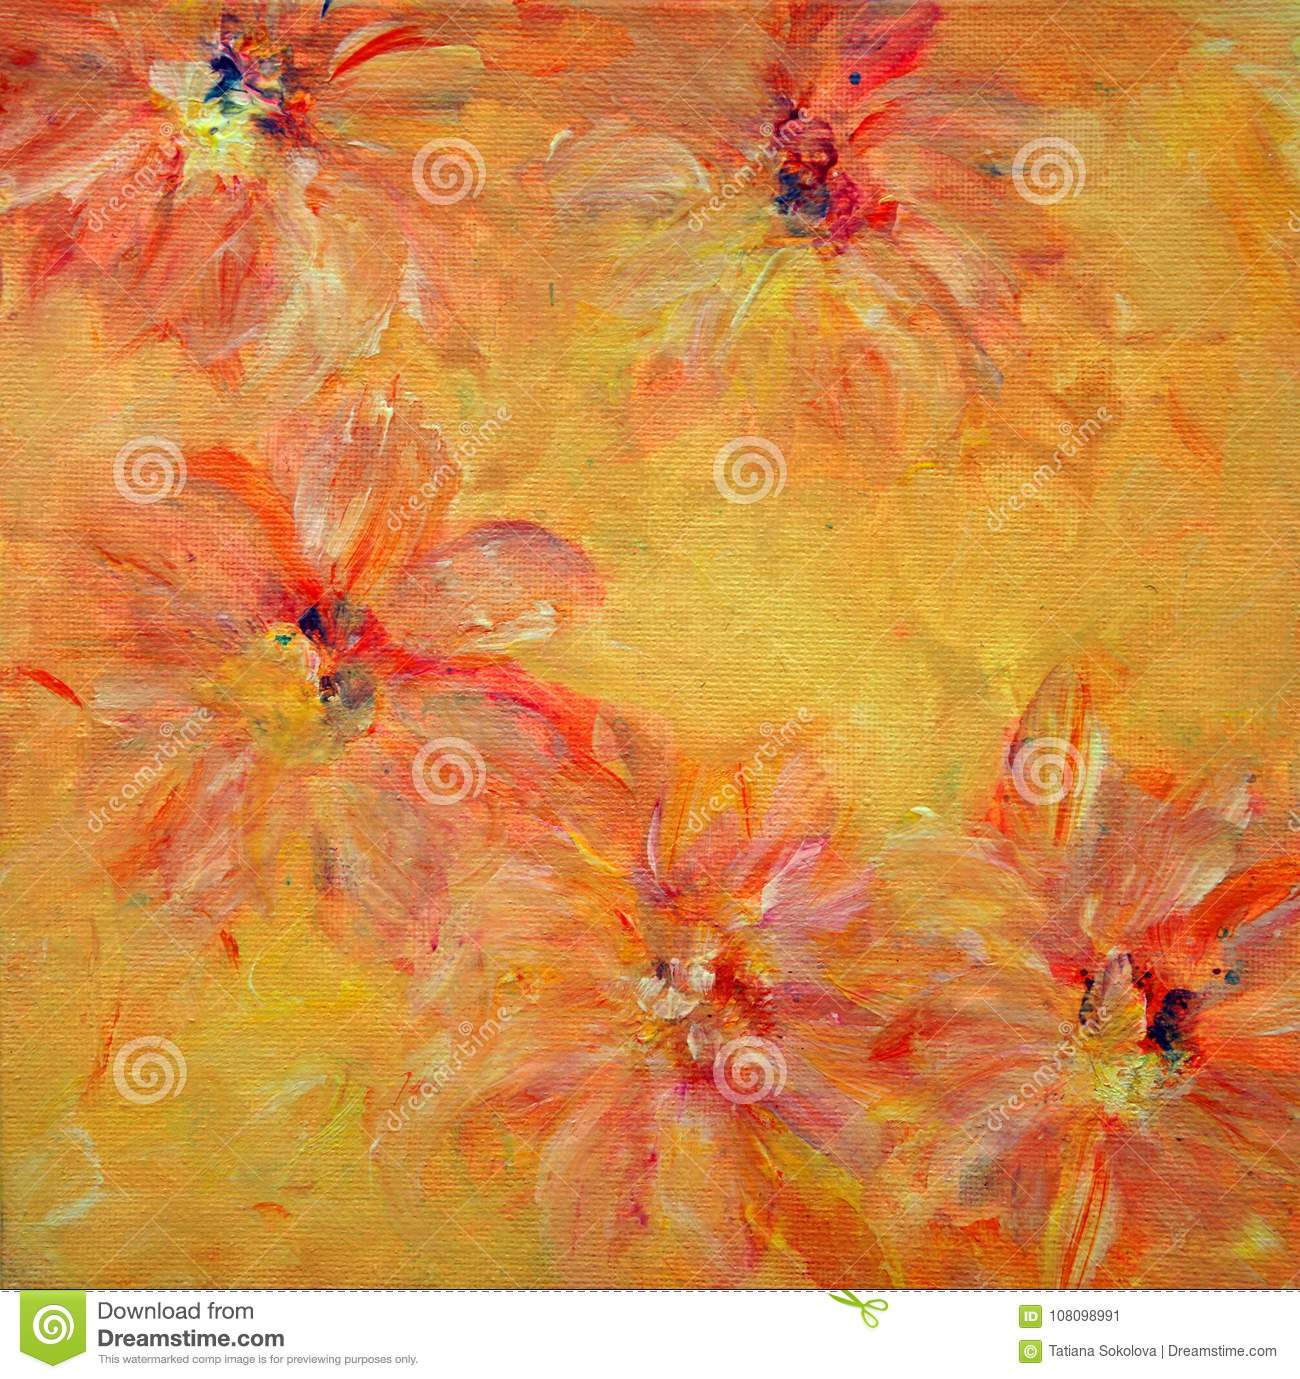 Orange and yellow flowers stock vector illustration of wallpaper download orange and yellow flowers stock vector illustration of wallpaper 108098991 mightylinksfo